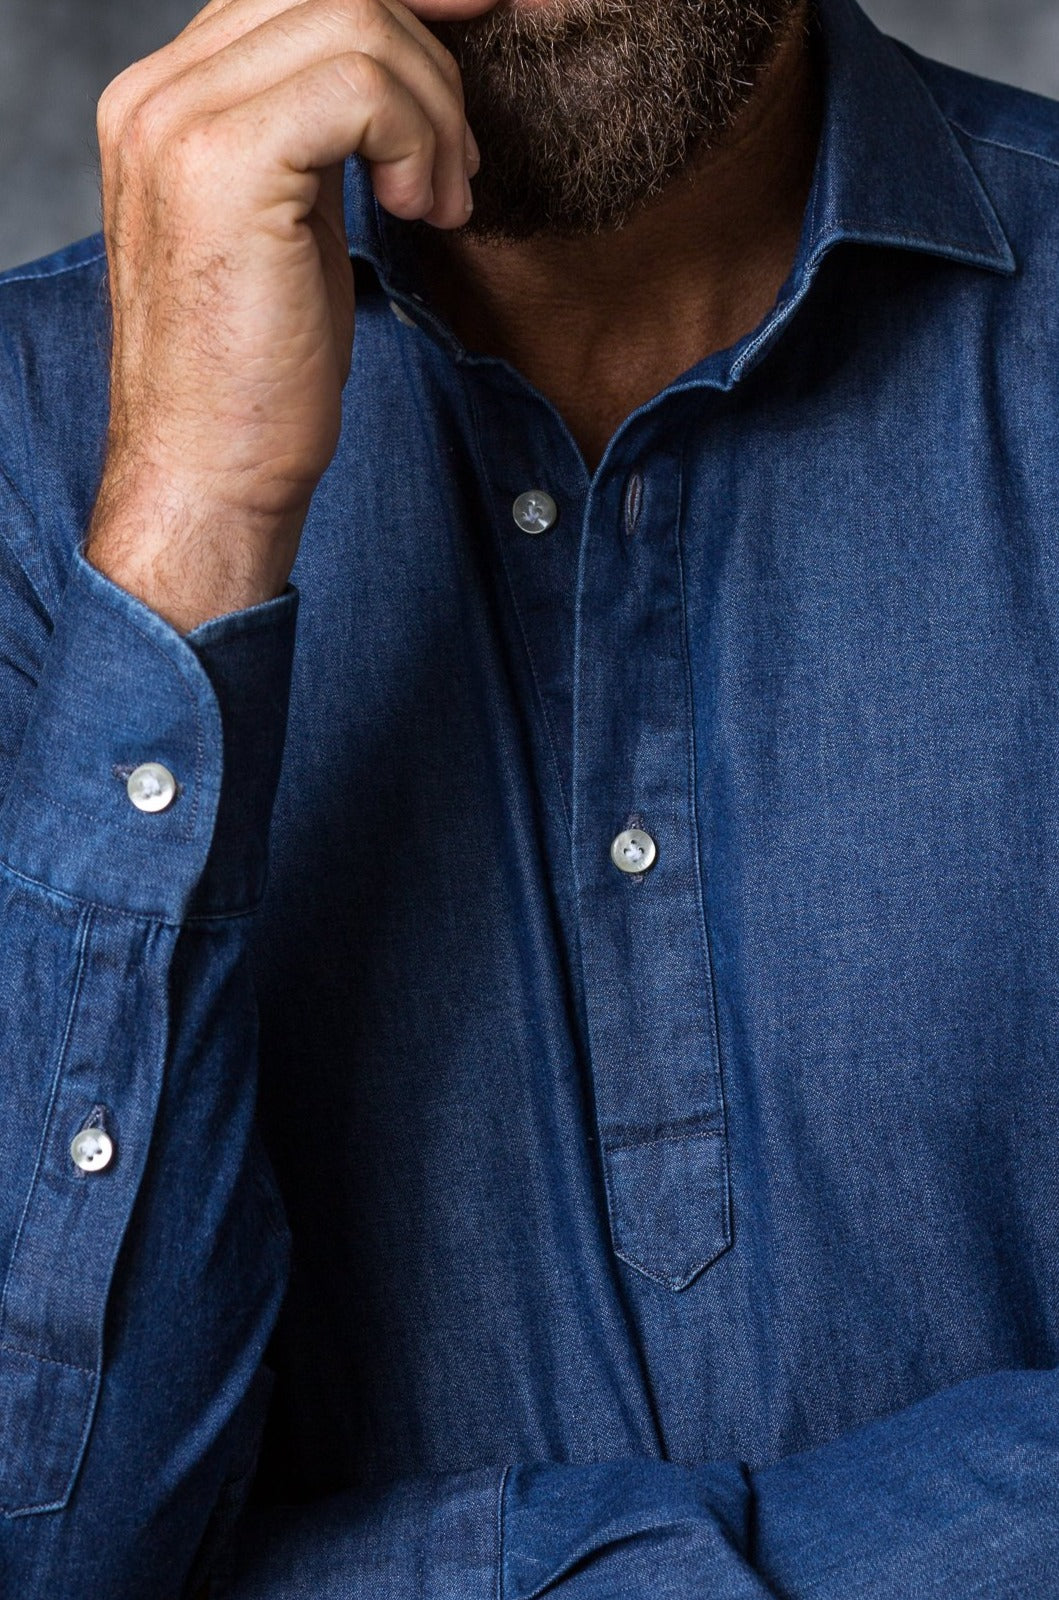 denim popover shirt made in italy denim shirt, chemise popover en denim homme, camicia in denim, chemise en jeans, popover shirt